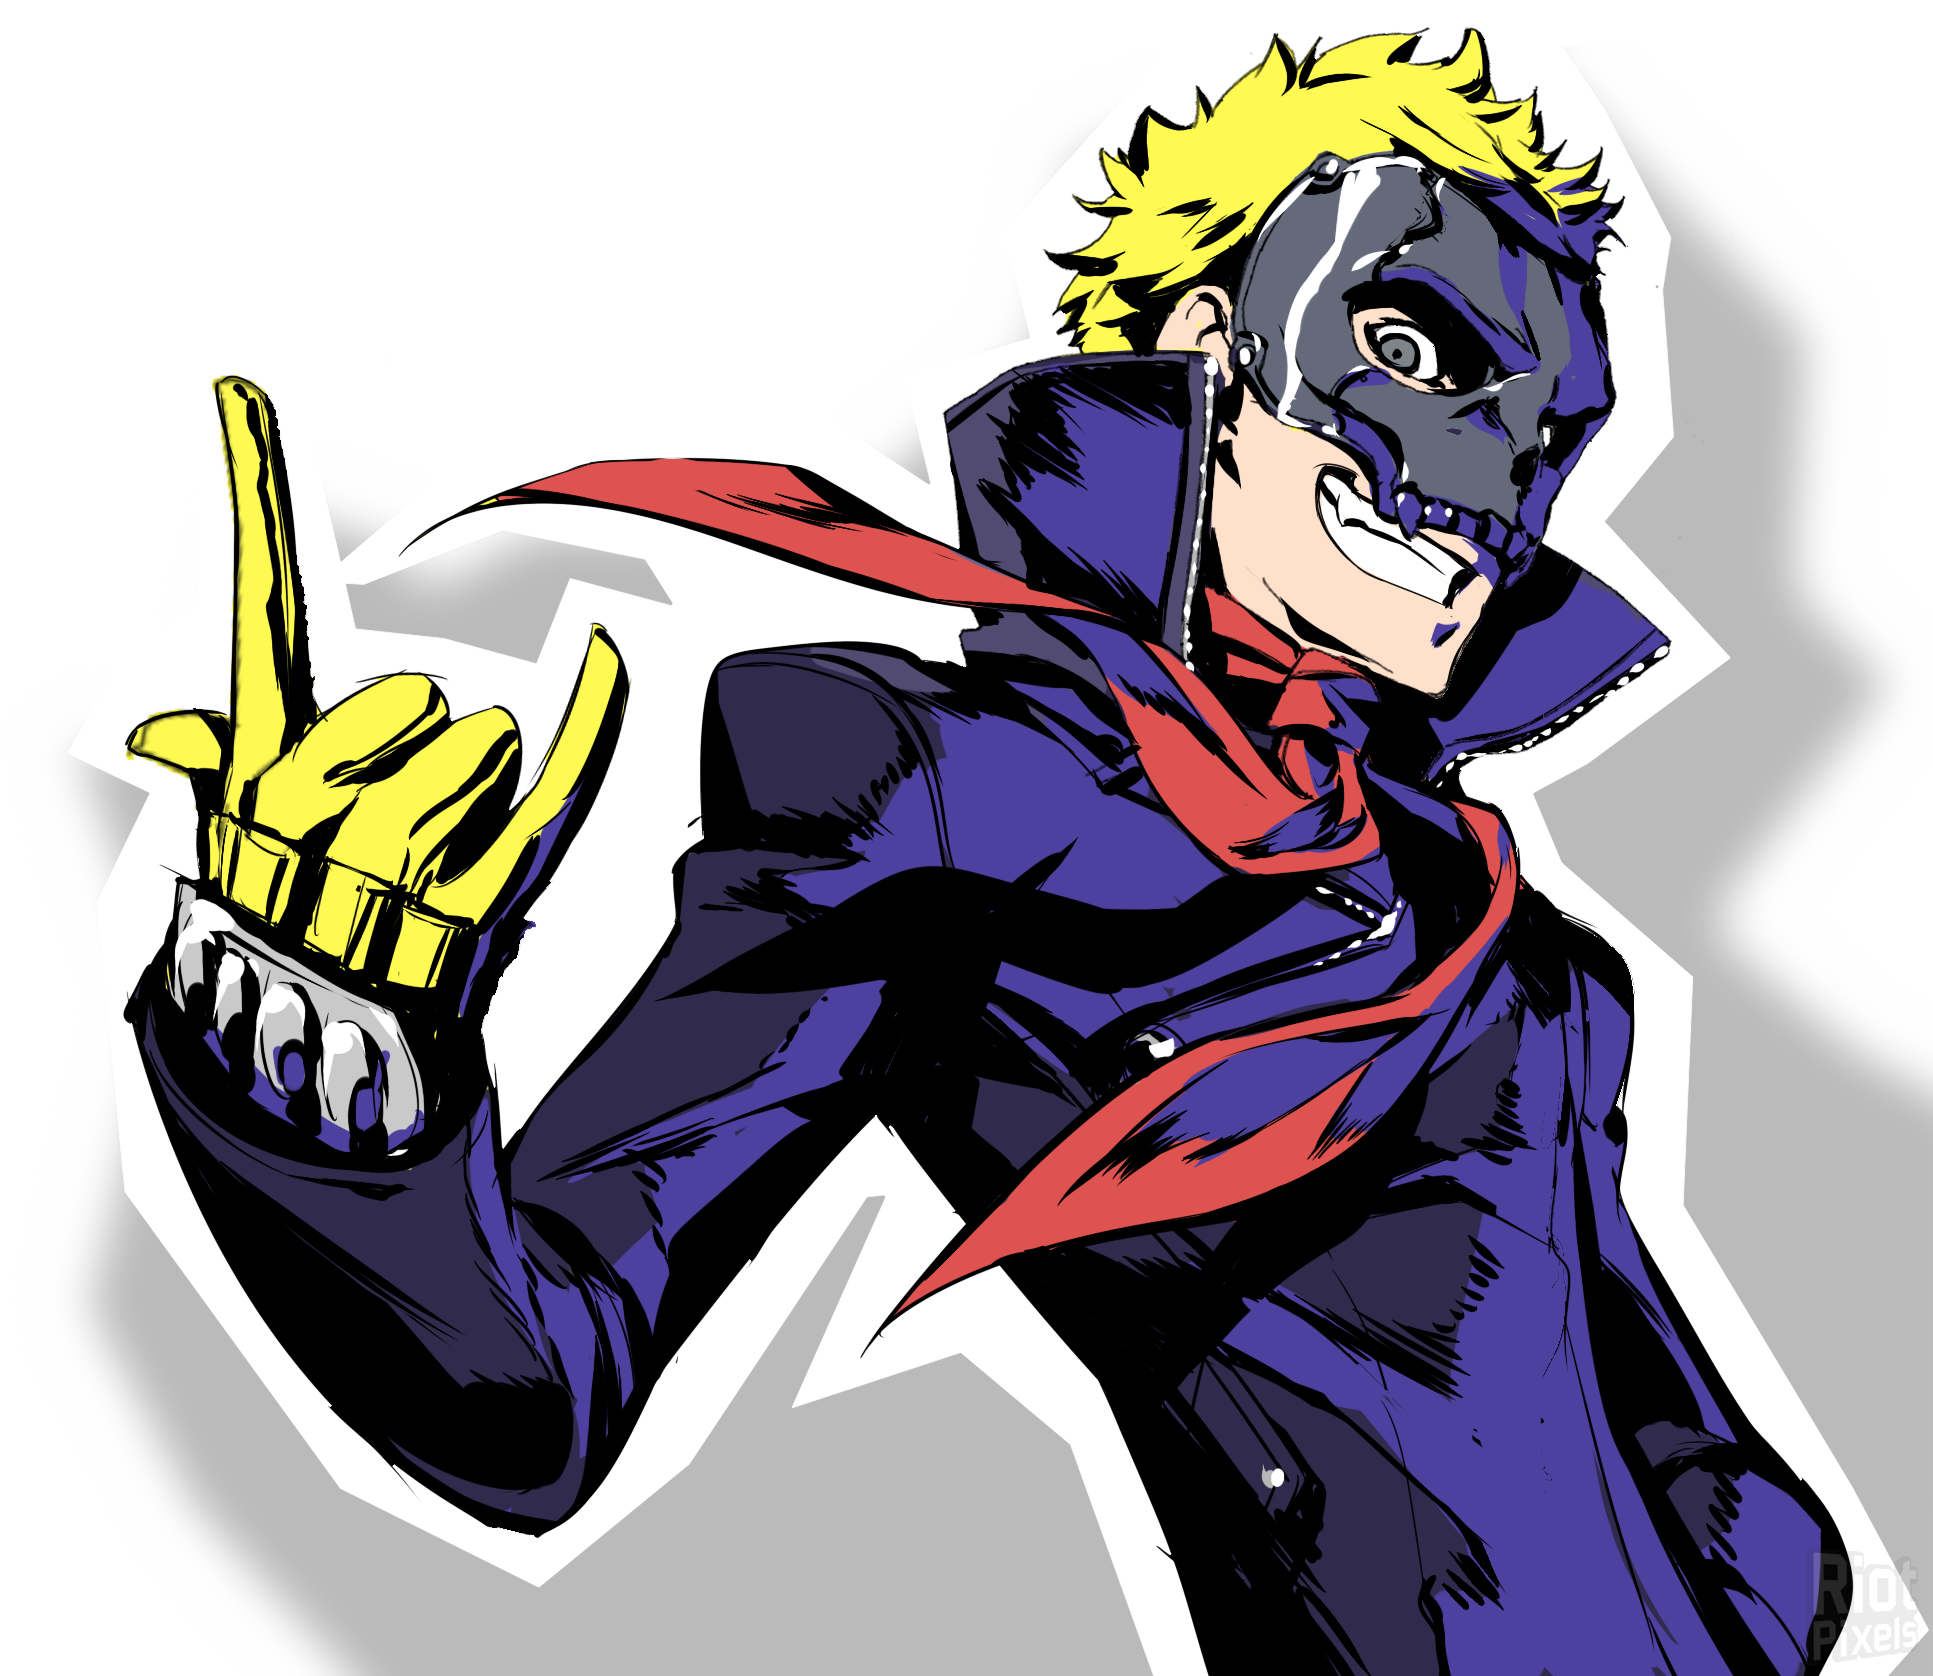 Persona 5 Clipart - Large Size Png Image - PikPng